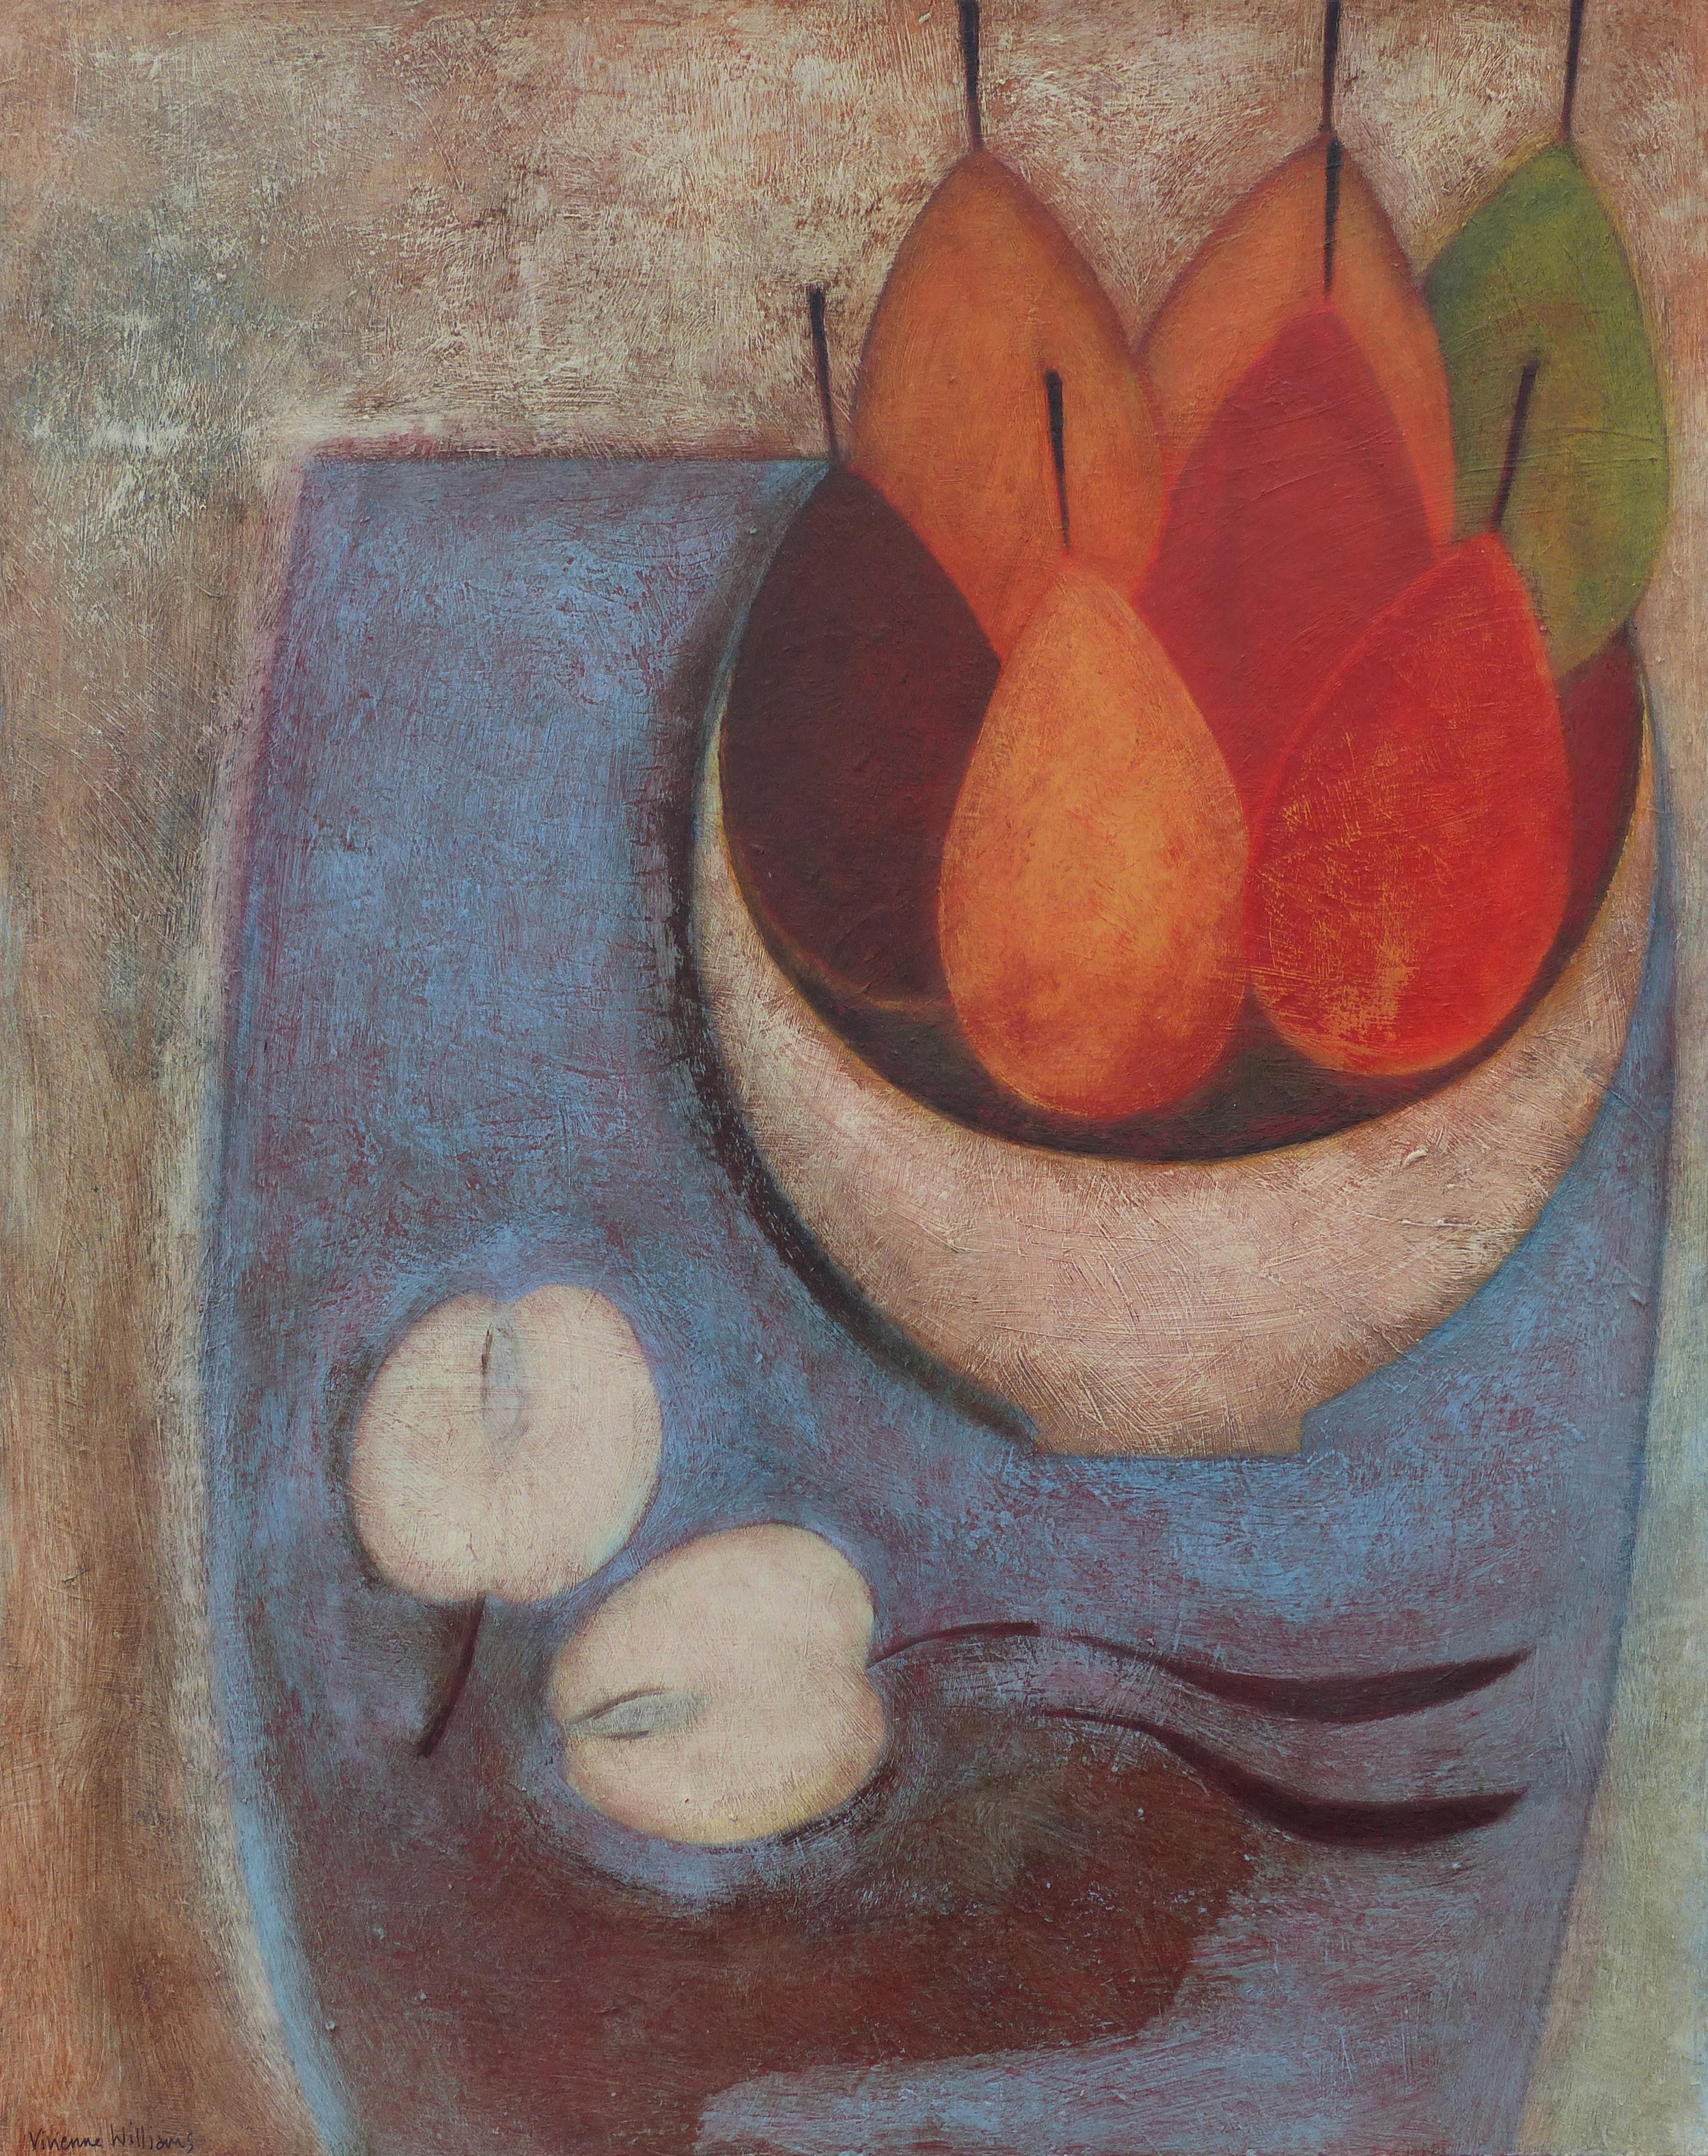 Still Life with Seven Pears, 51cm x 41cm, 2014